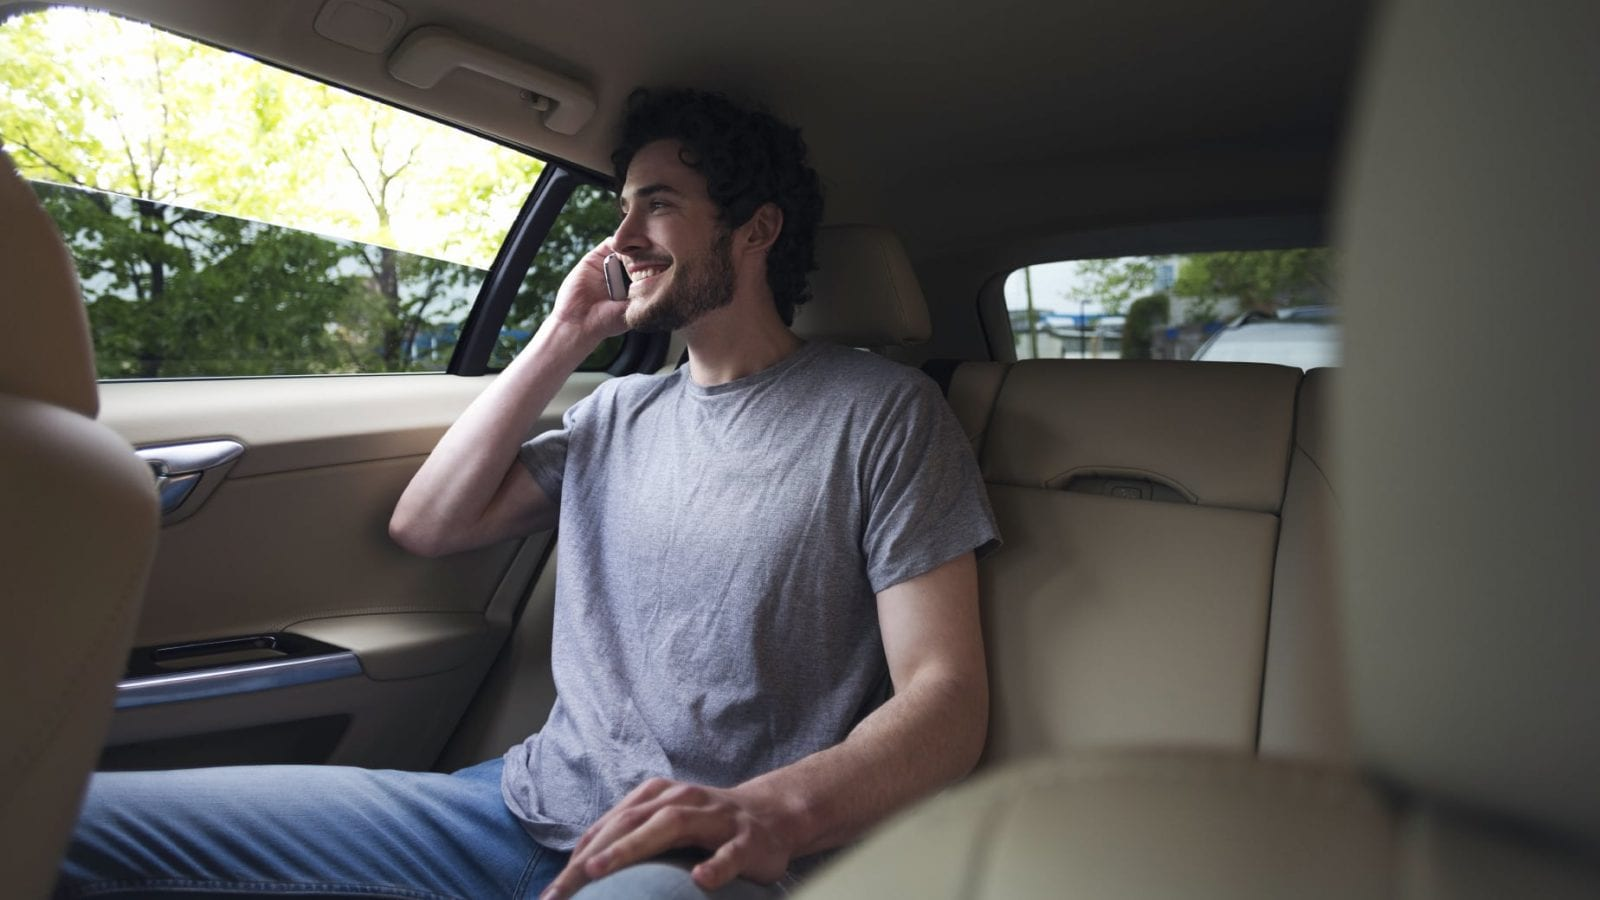 Man Talking On Cell Phone In Back Of Car